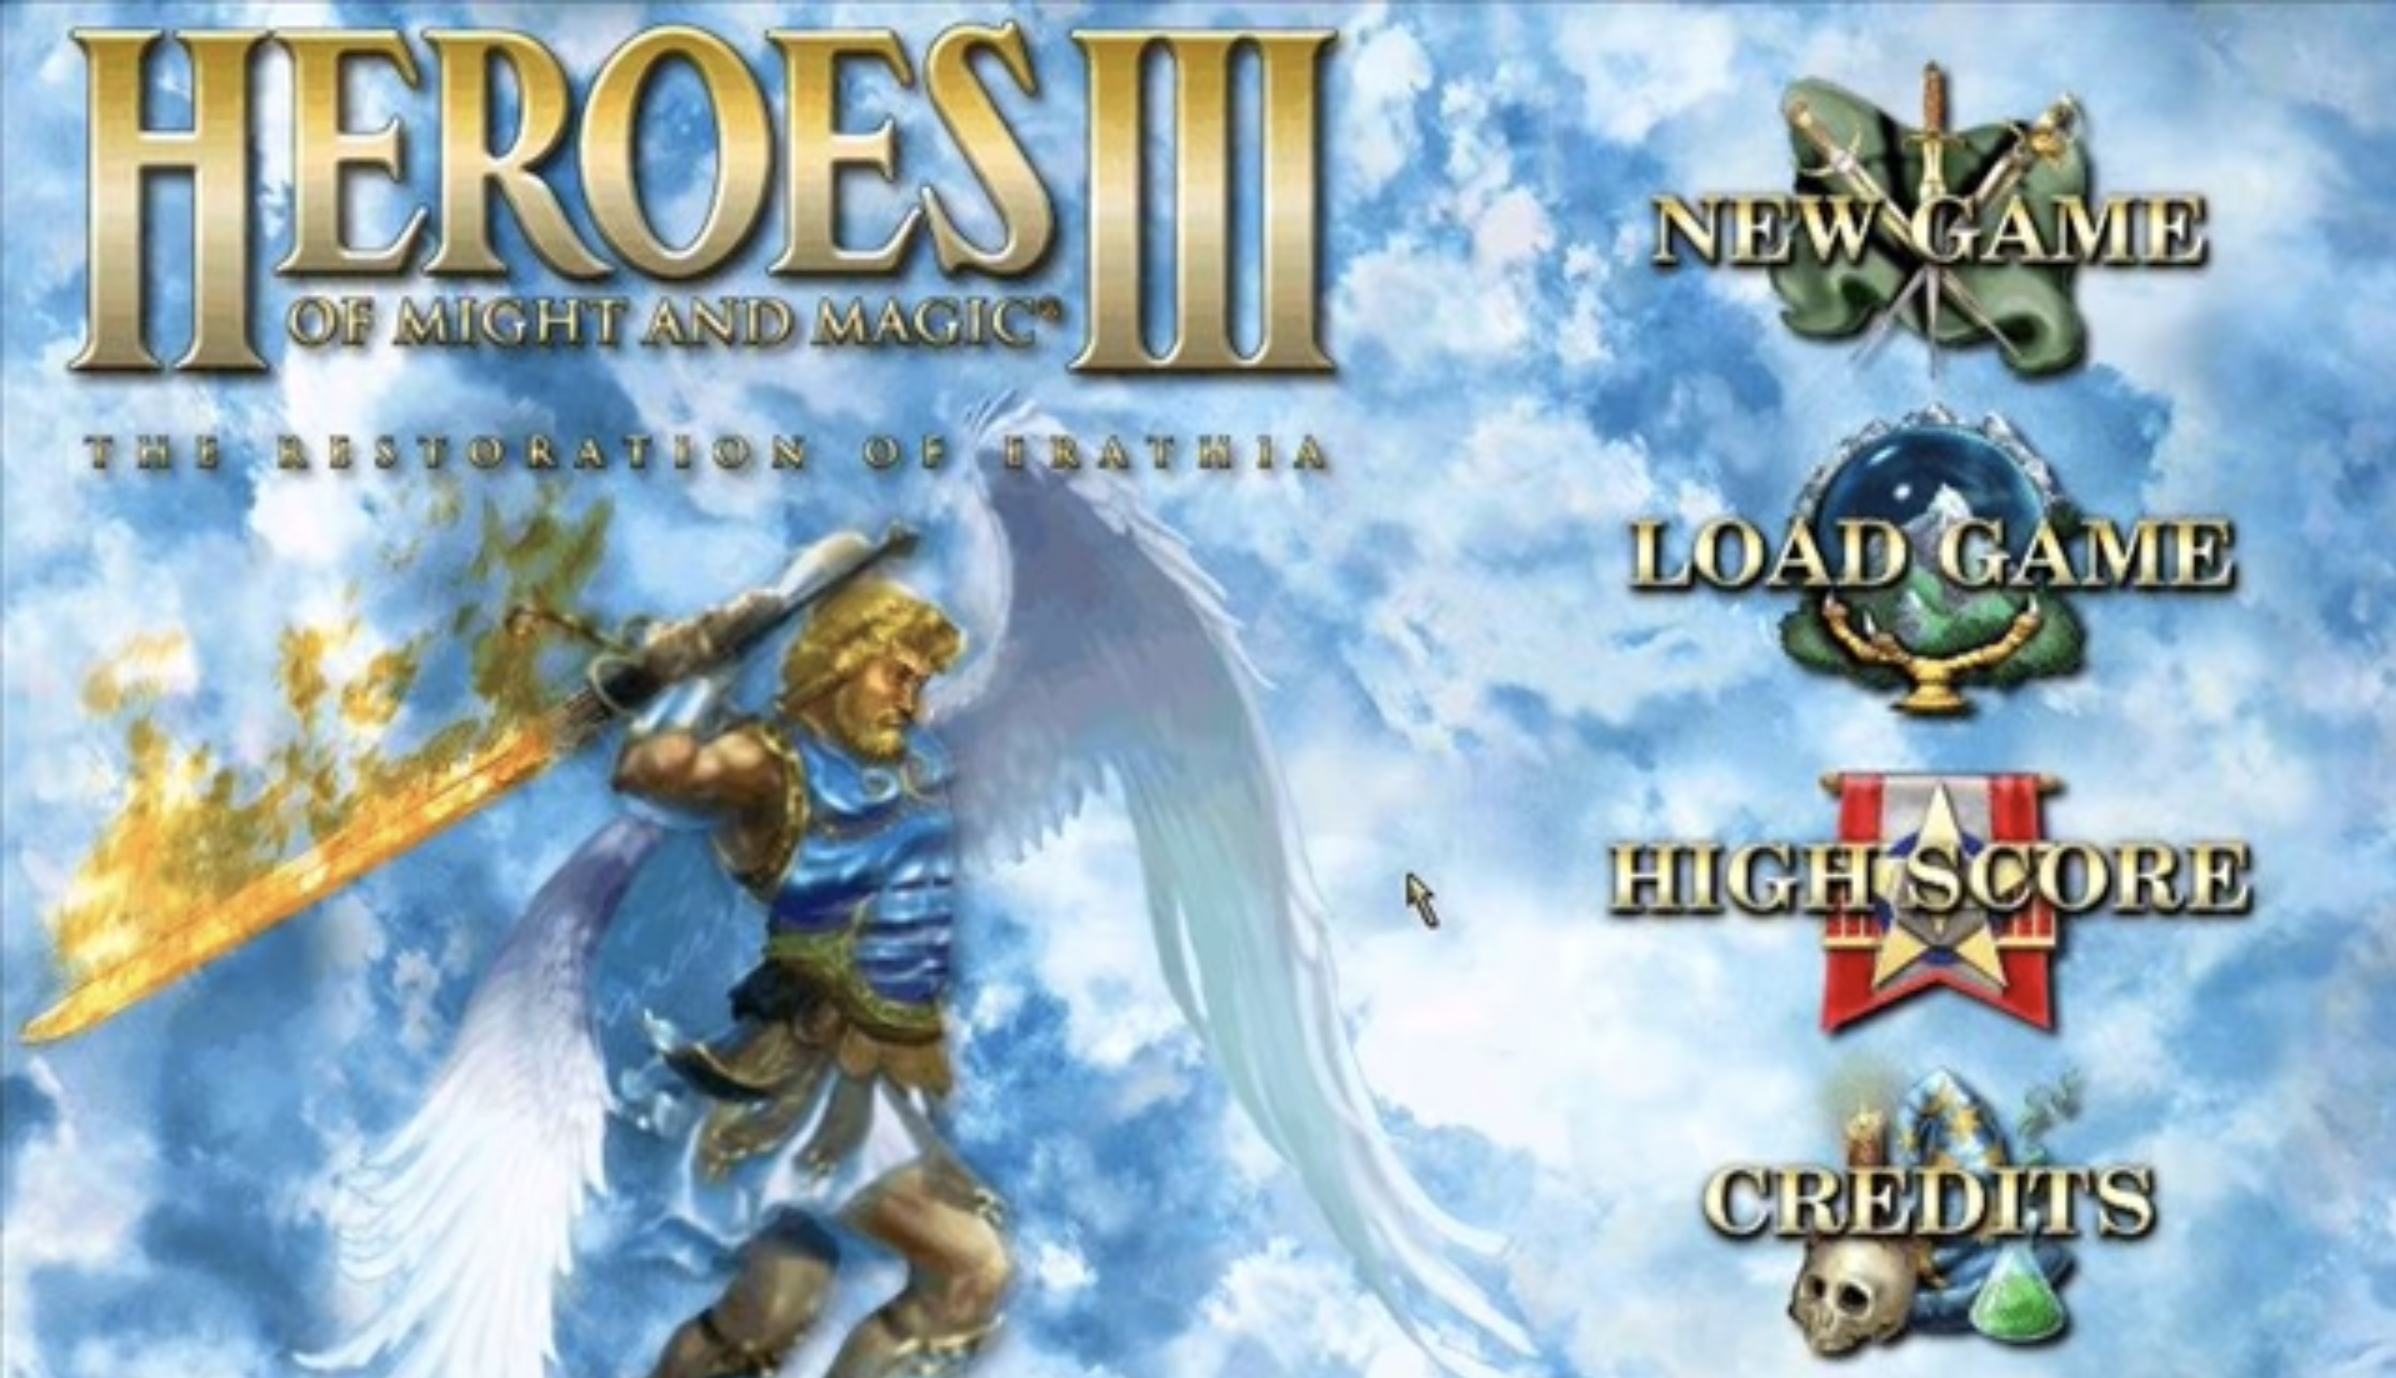 What S The Deal With Heroes Of Might And Magic Iii By Mj